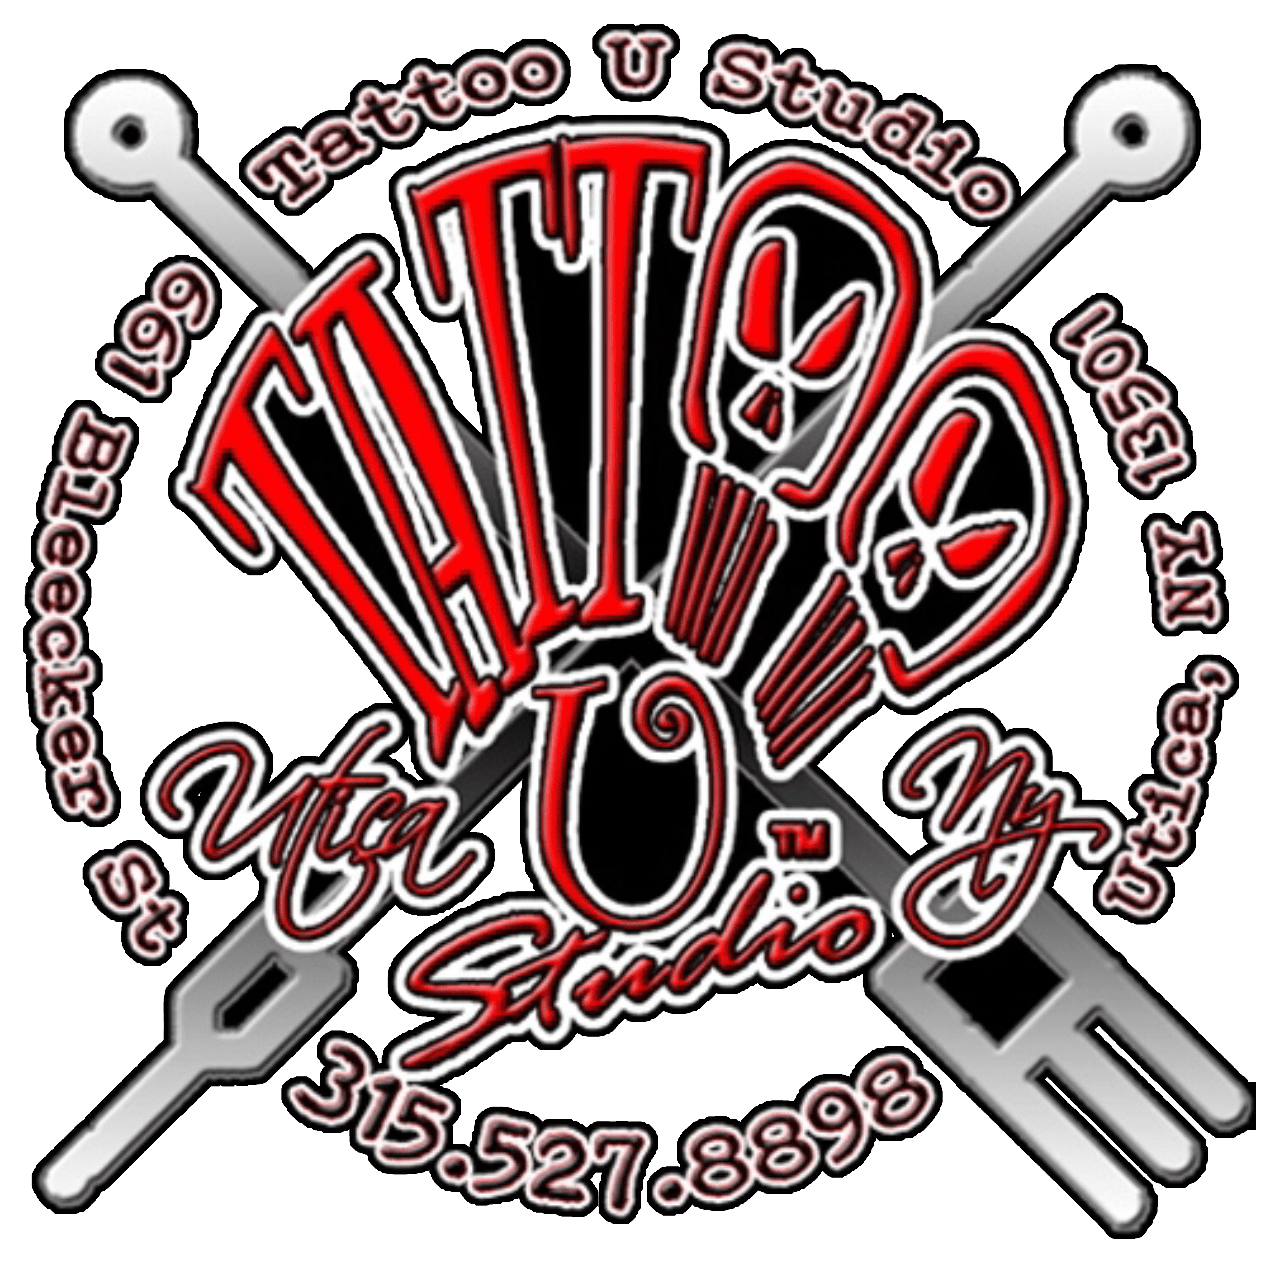 Tattoo U Studio